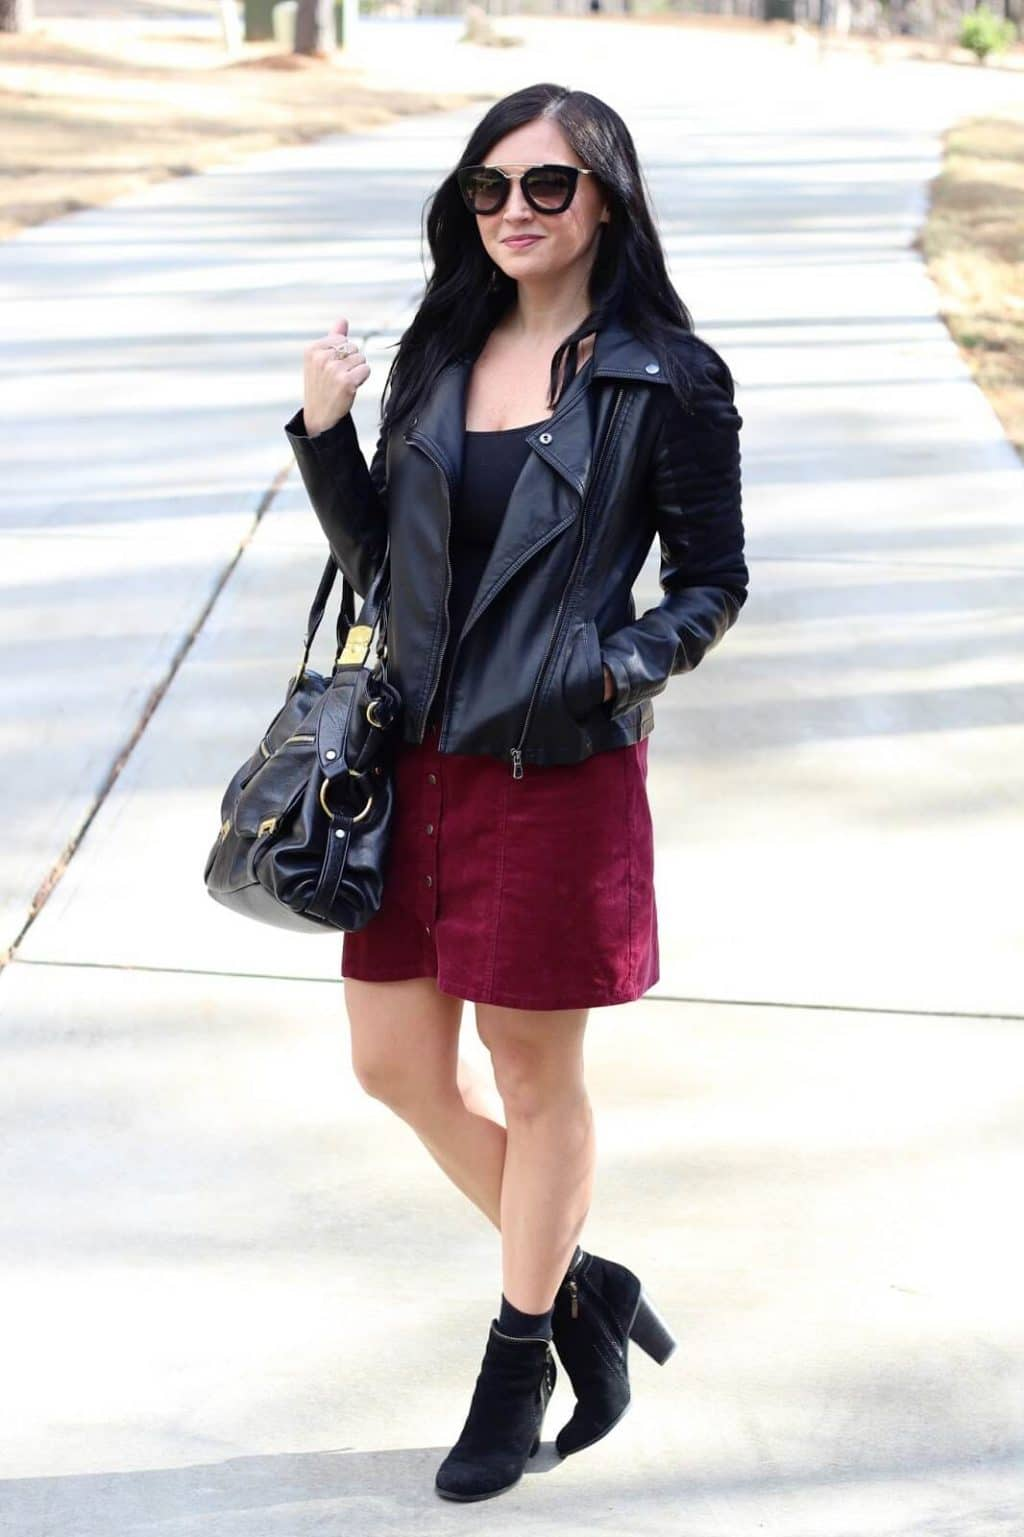 Skirt with Booties, leather jacket, prada sunglasses